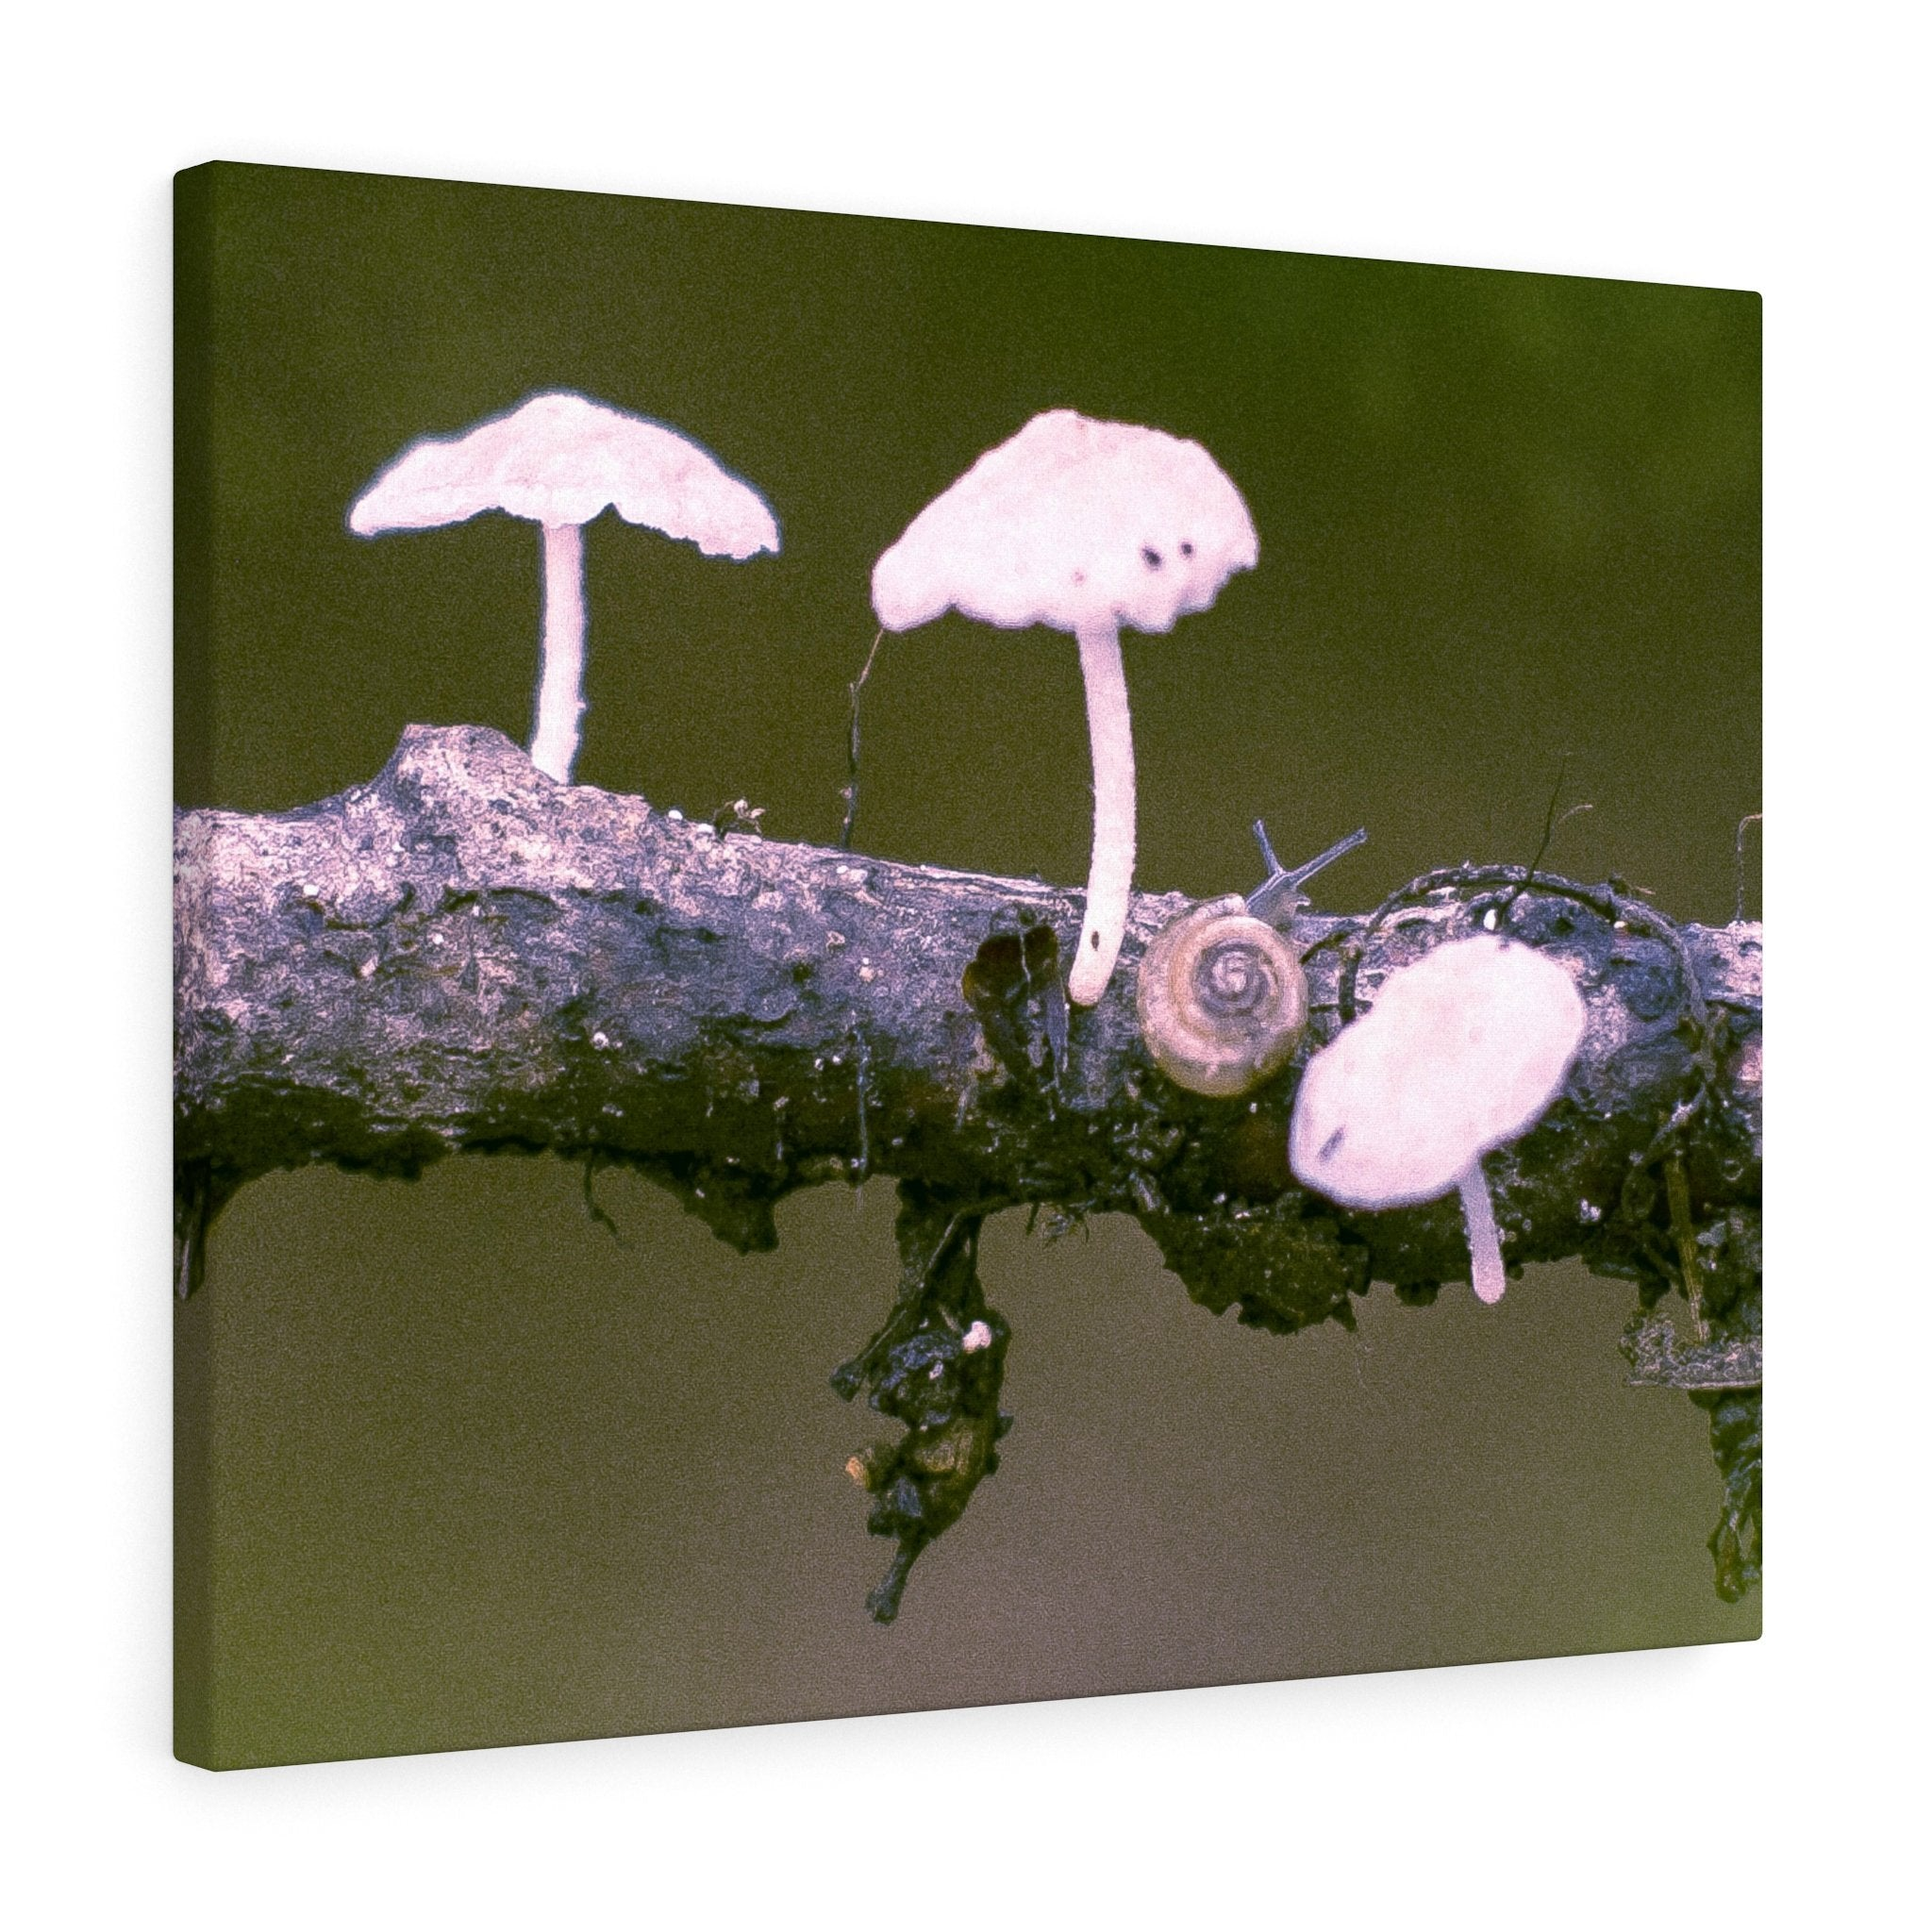 Snail on a Log Stretched canvas 30″ × 24″ / Stretched Canvas (1.5